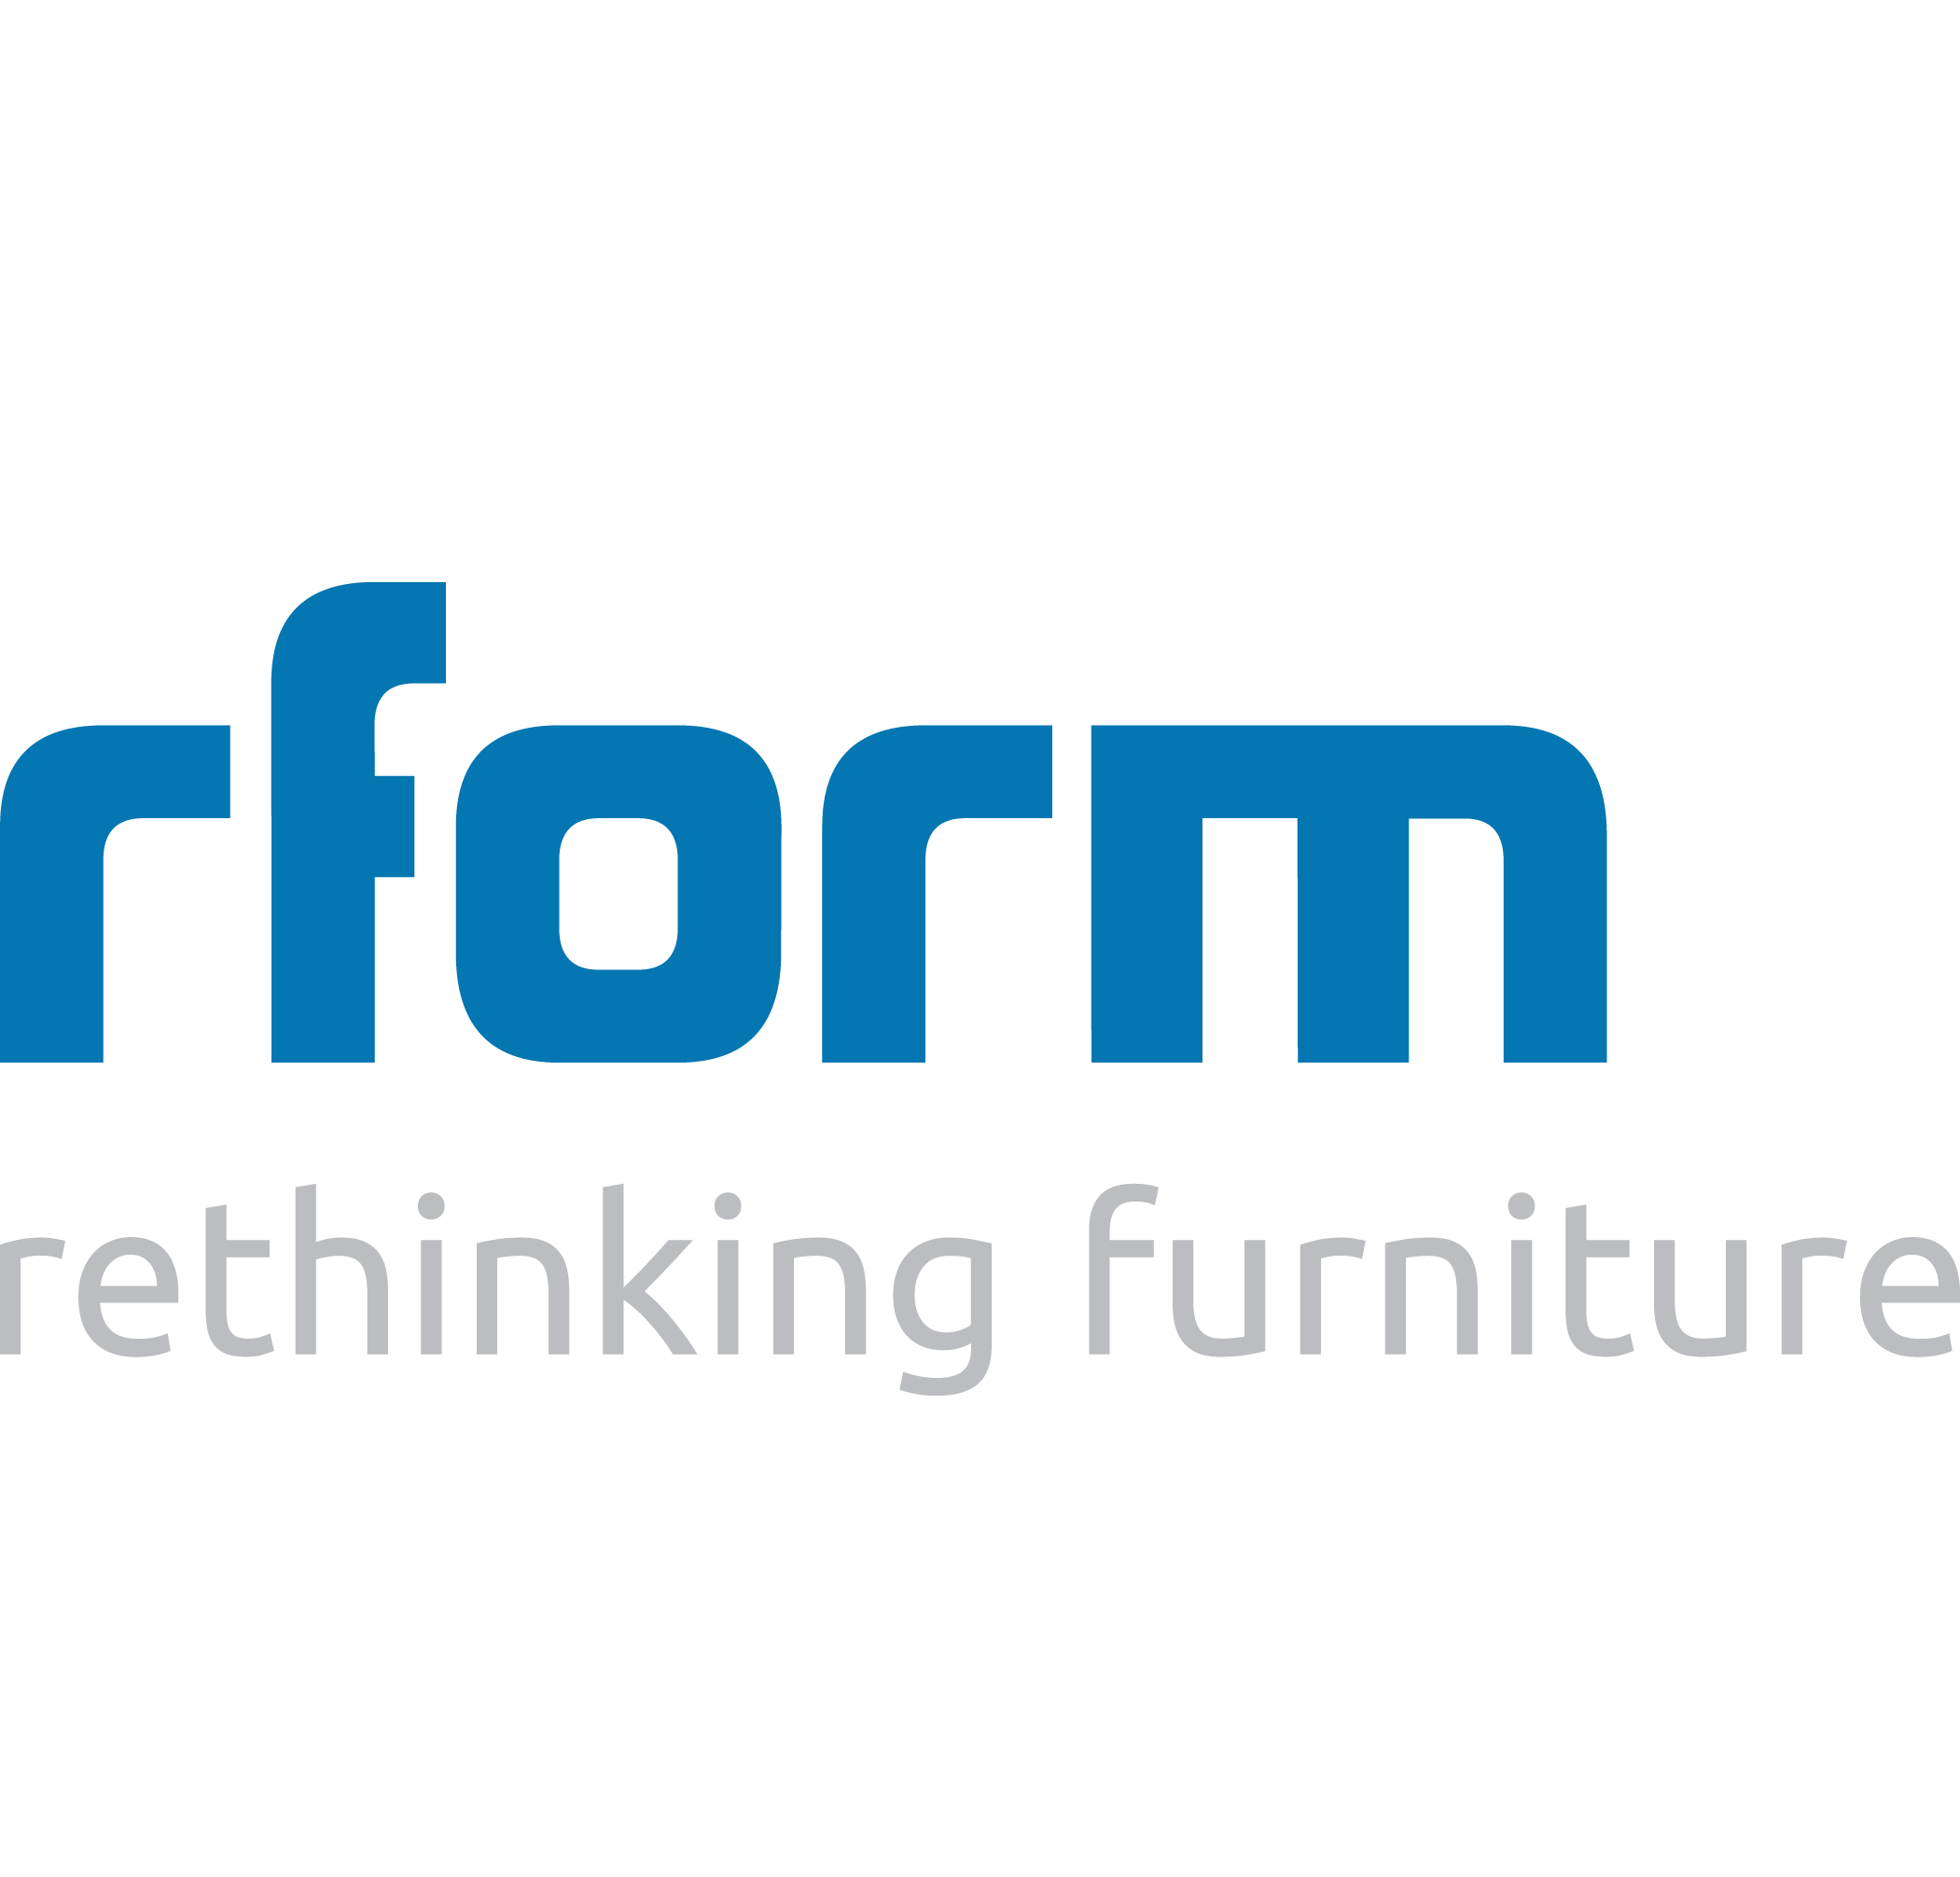 rform Rethinking Furniture